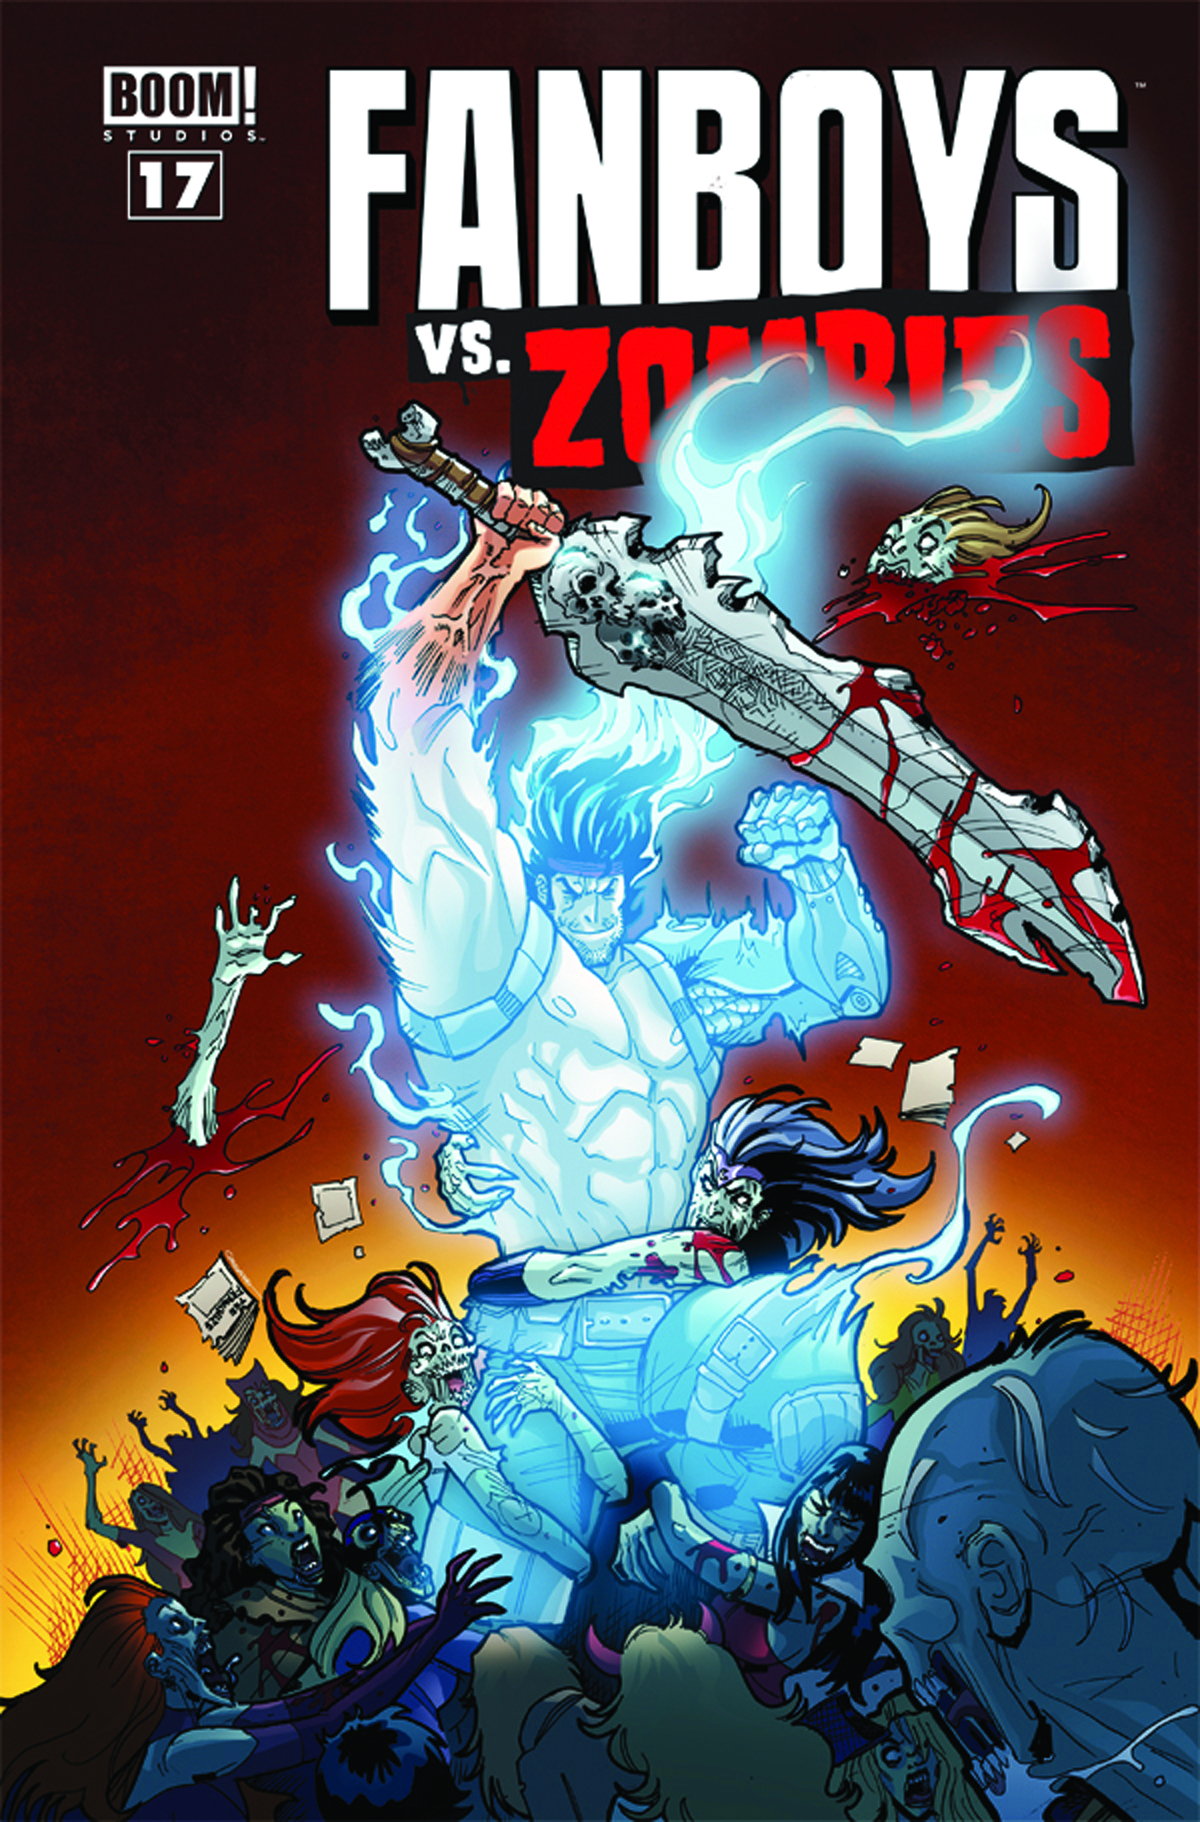 FANBOYS VS ZOMBIES #17